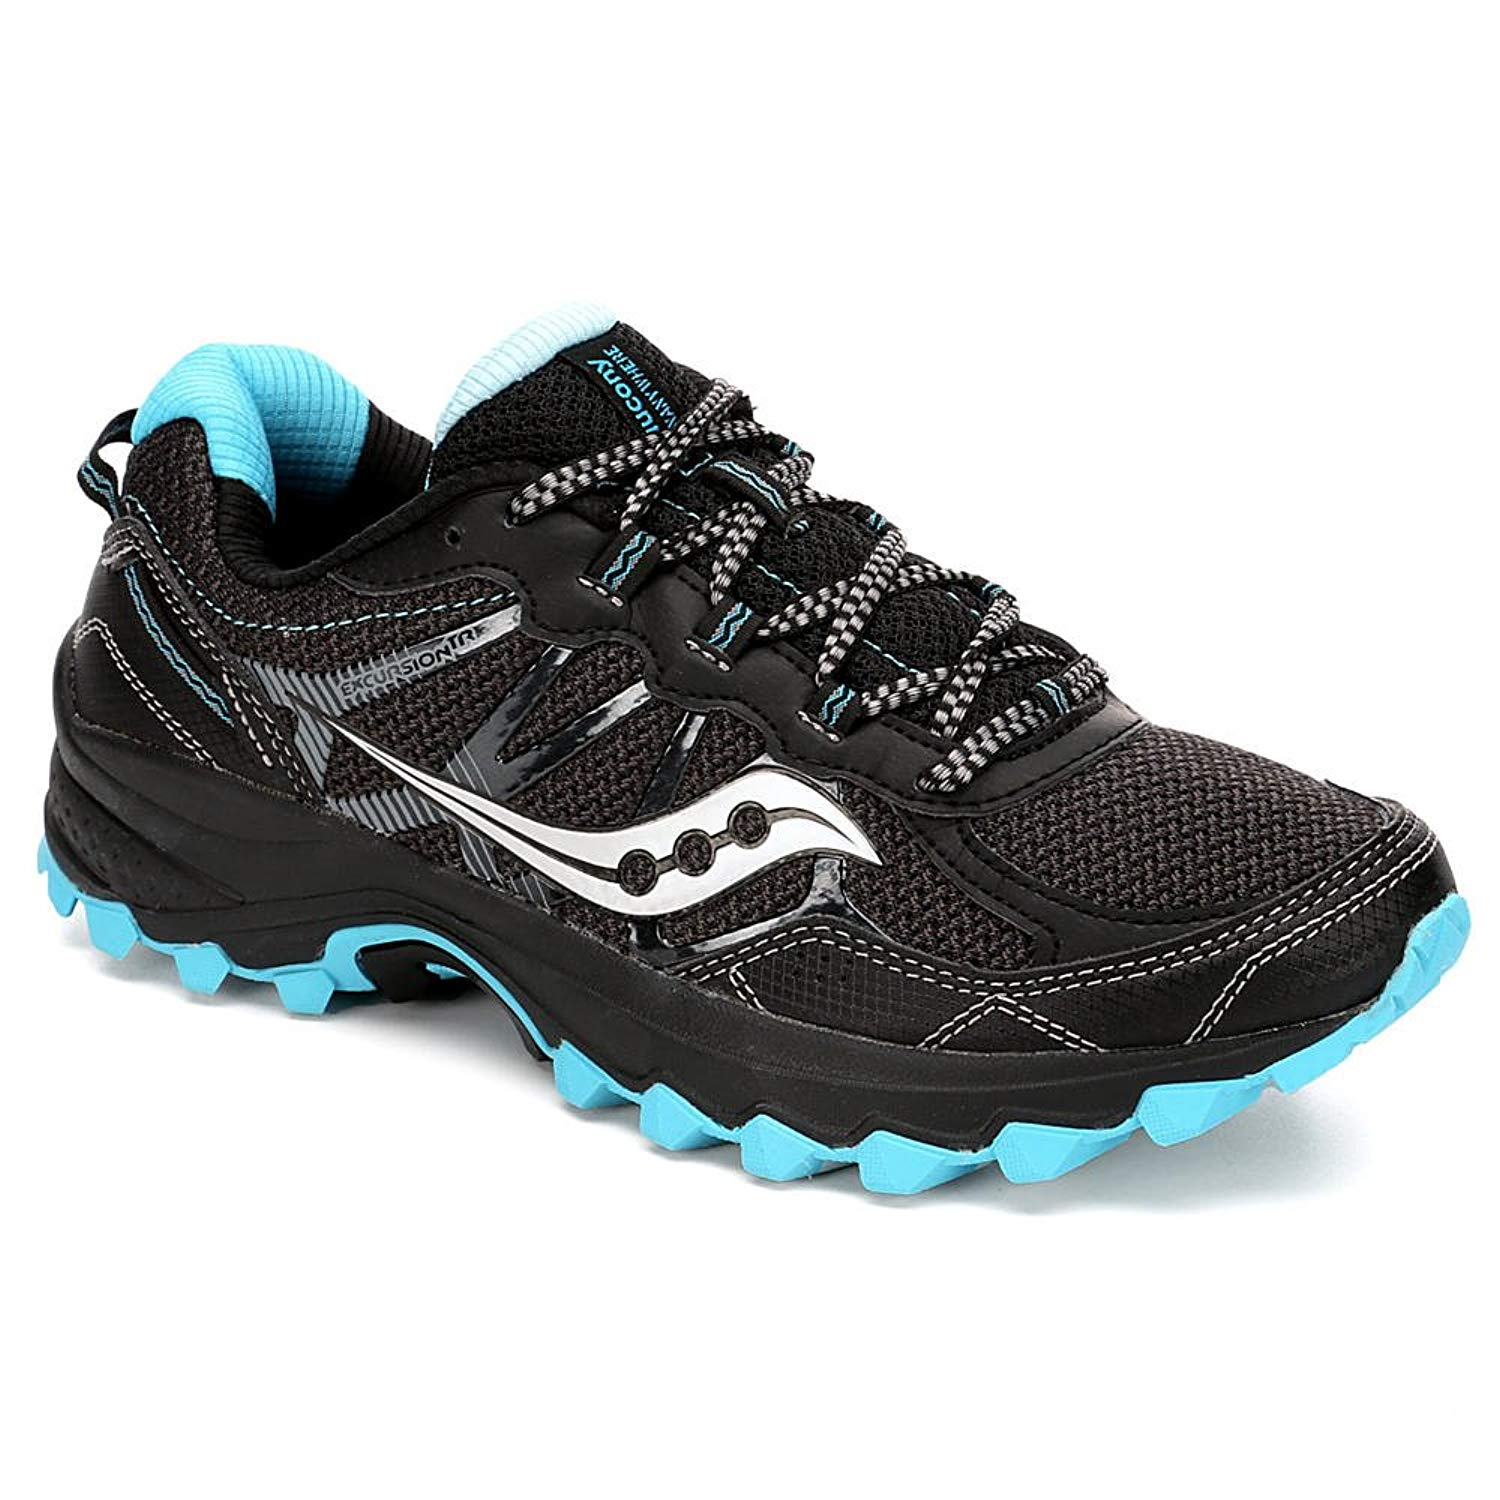 908a2b858be8 Get Quotations · Saucony Womens Excursion TR11 Trail Running Shoes